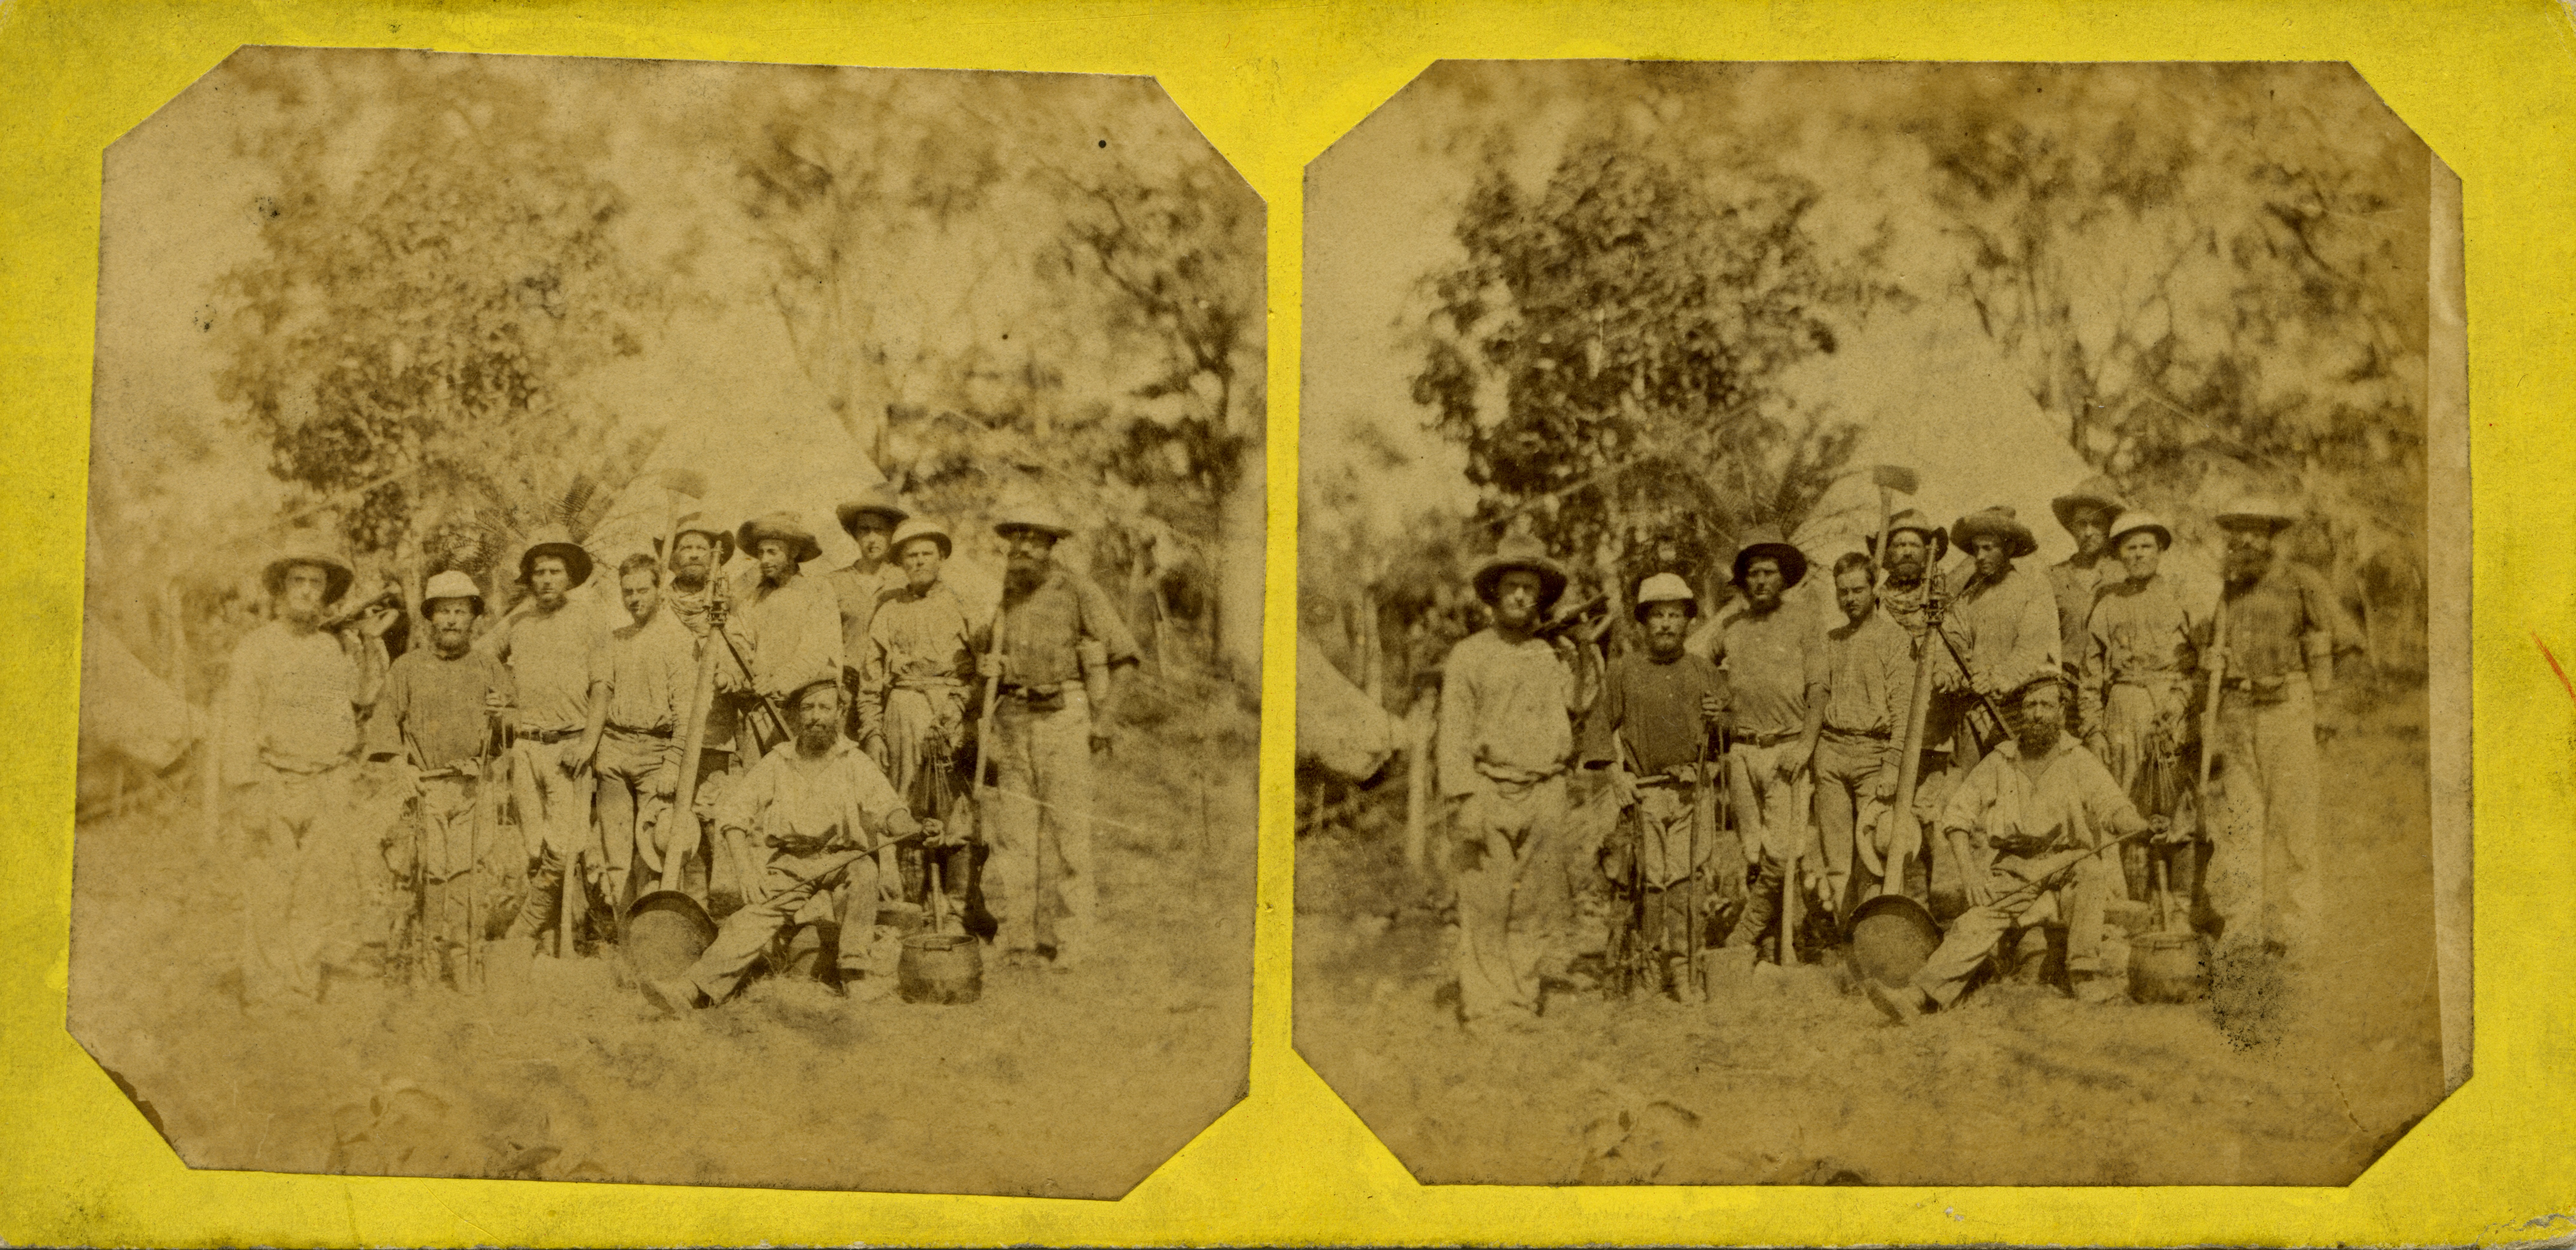 Stereoscopic image of Members of the Northern Territory Surveying Expedition, 1869.